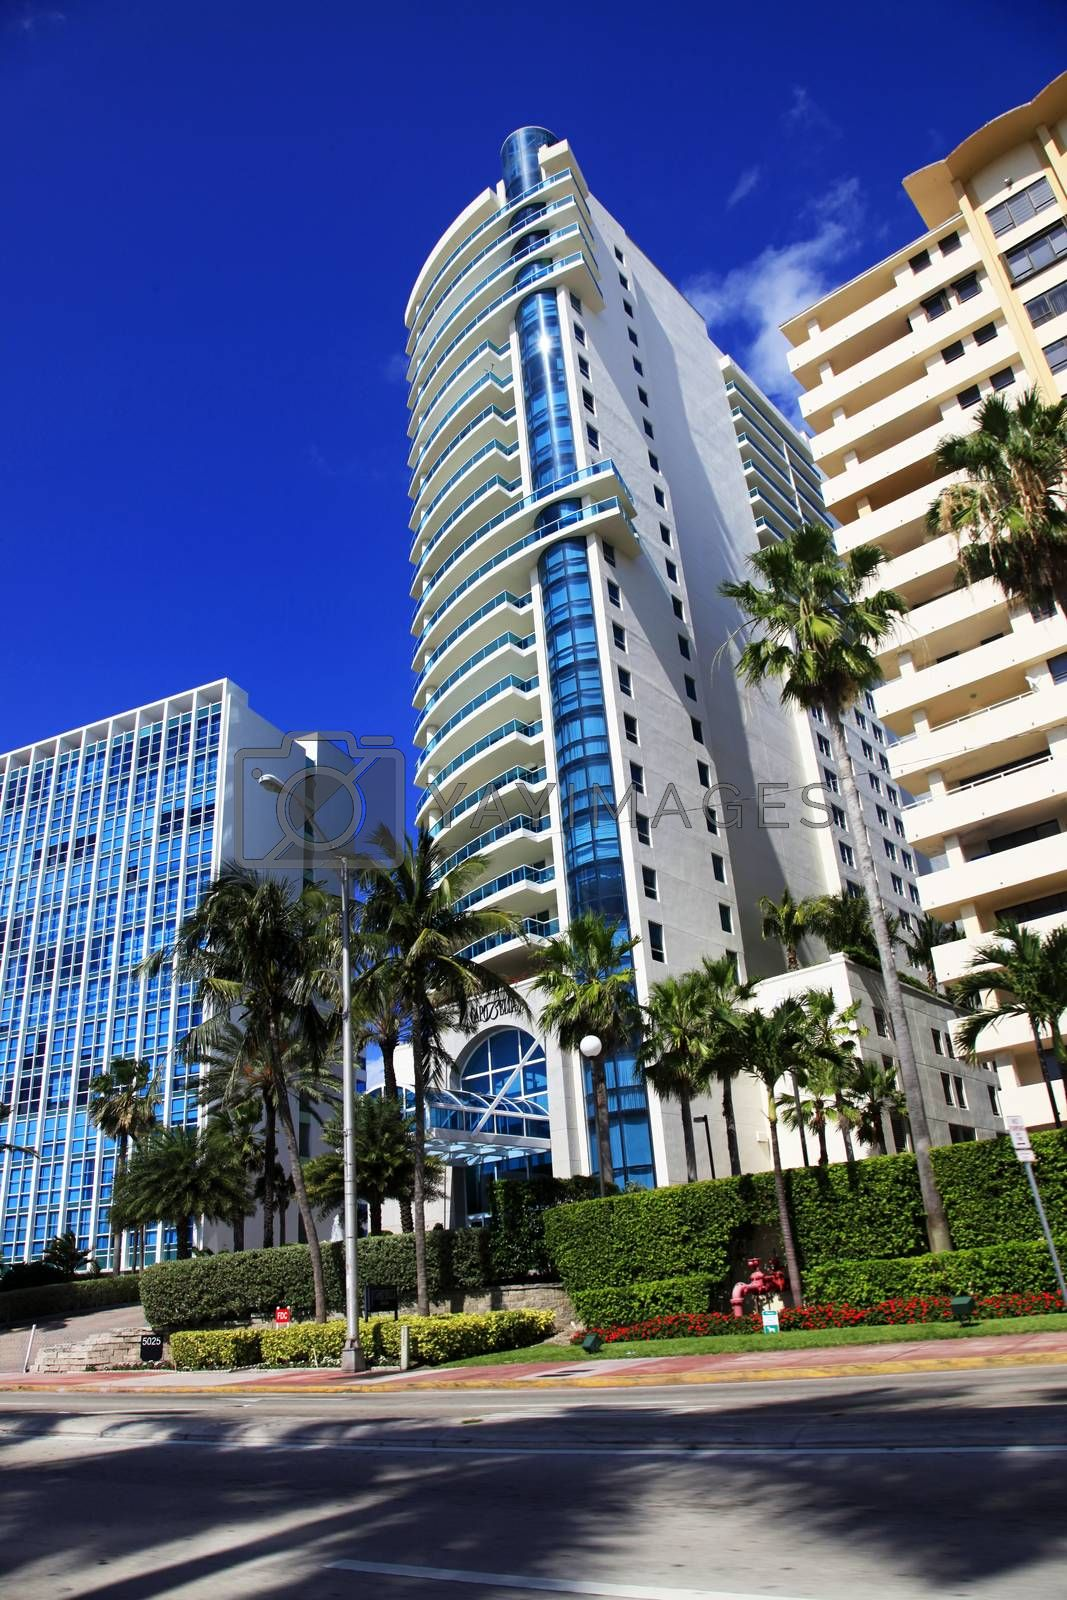 """Miami, Florida, USA - May 14, 2013: Luxurious apartment building """"Capobella"""" at 5025 Collins Avenue was constructed by Architect Stuart Cohen in 1995, may 14, 2013 in Miami, Florida."""